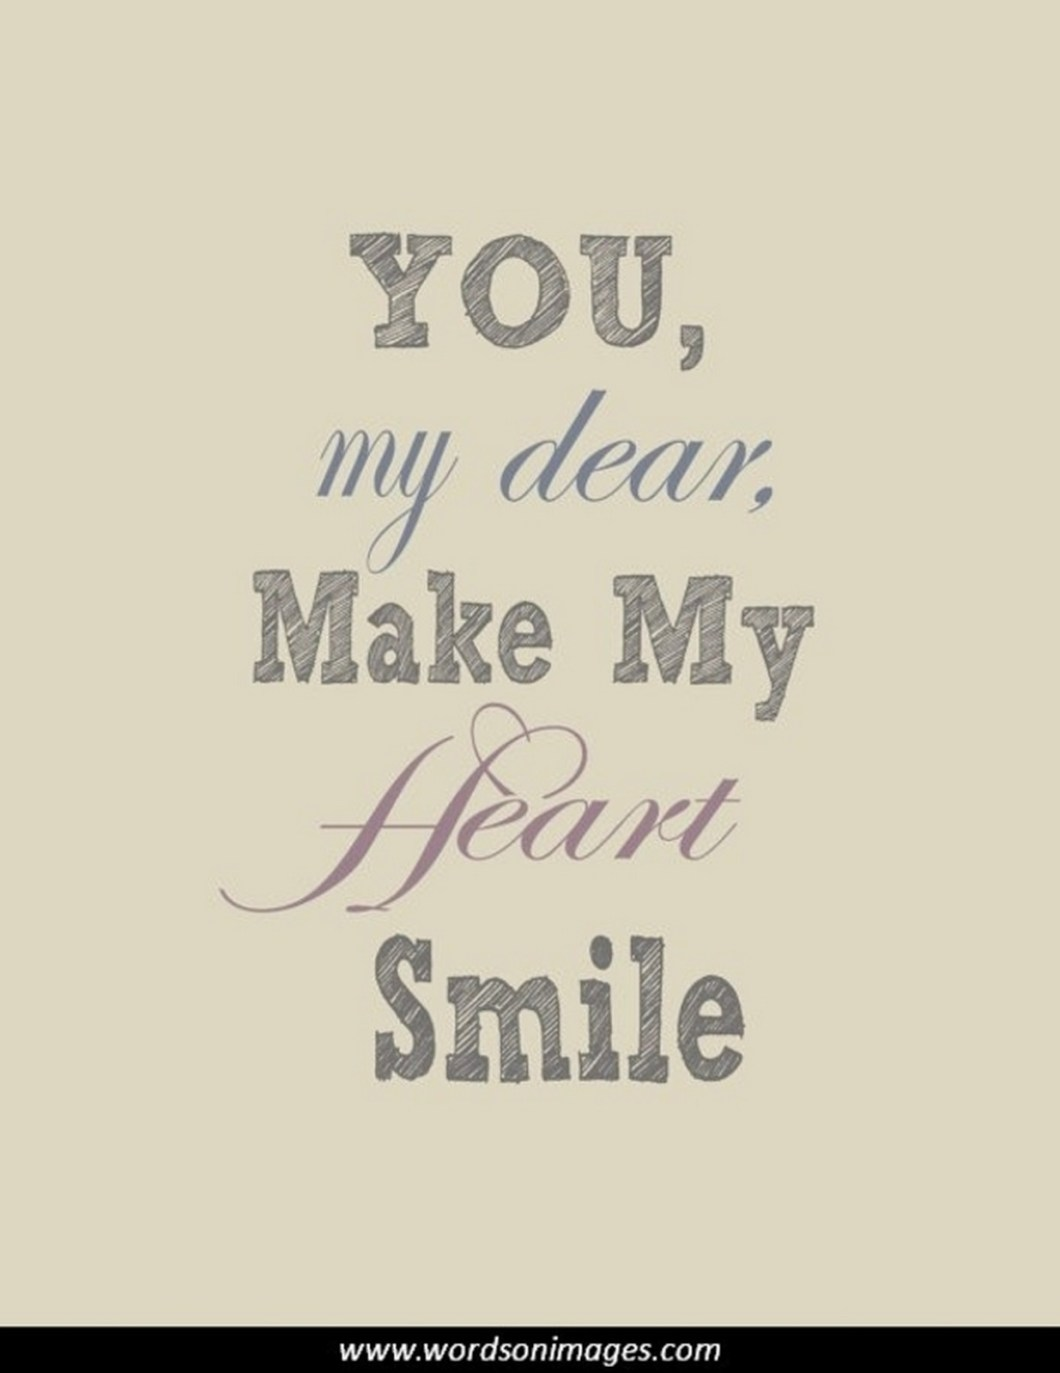 """55 Romantic Quotes - """"You, my dear, make my heart smile."""""""